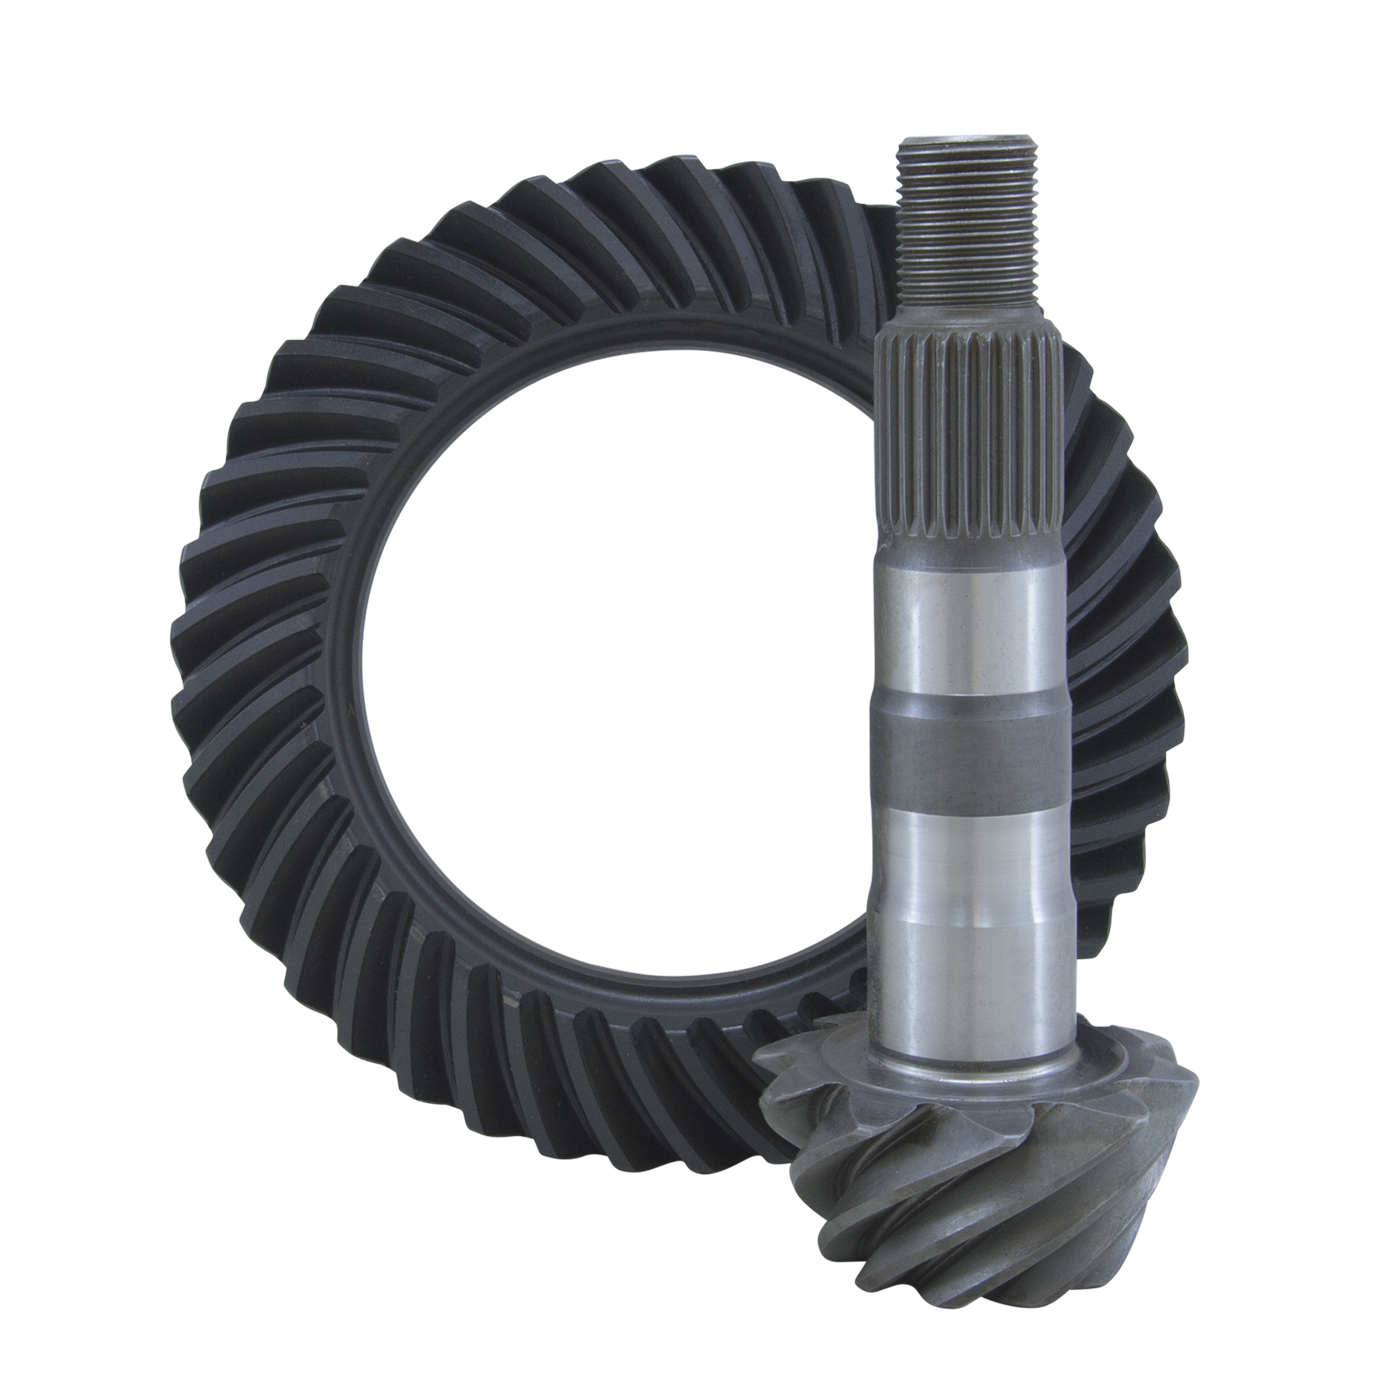 ZG GM7.2-411R - USA Standard Ring & Pinion gear set for GM IFS 7.2